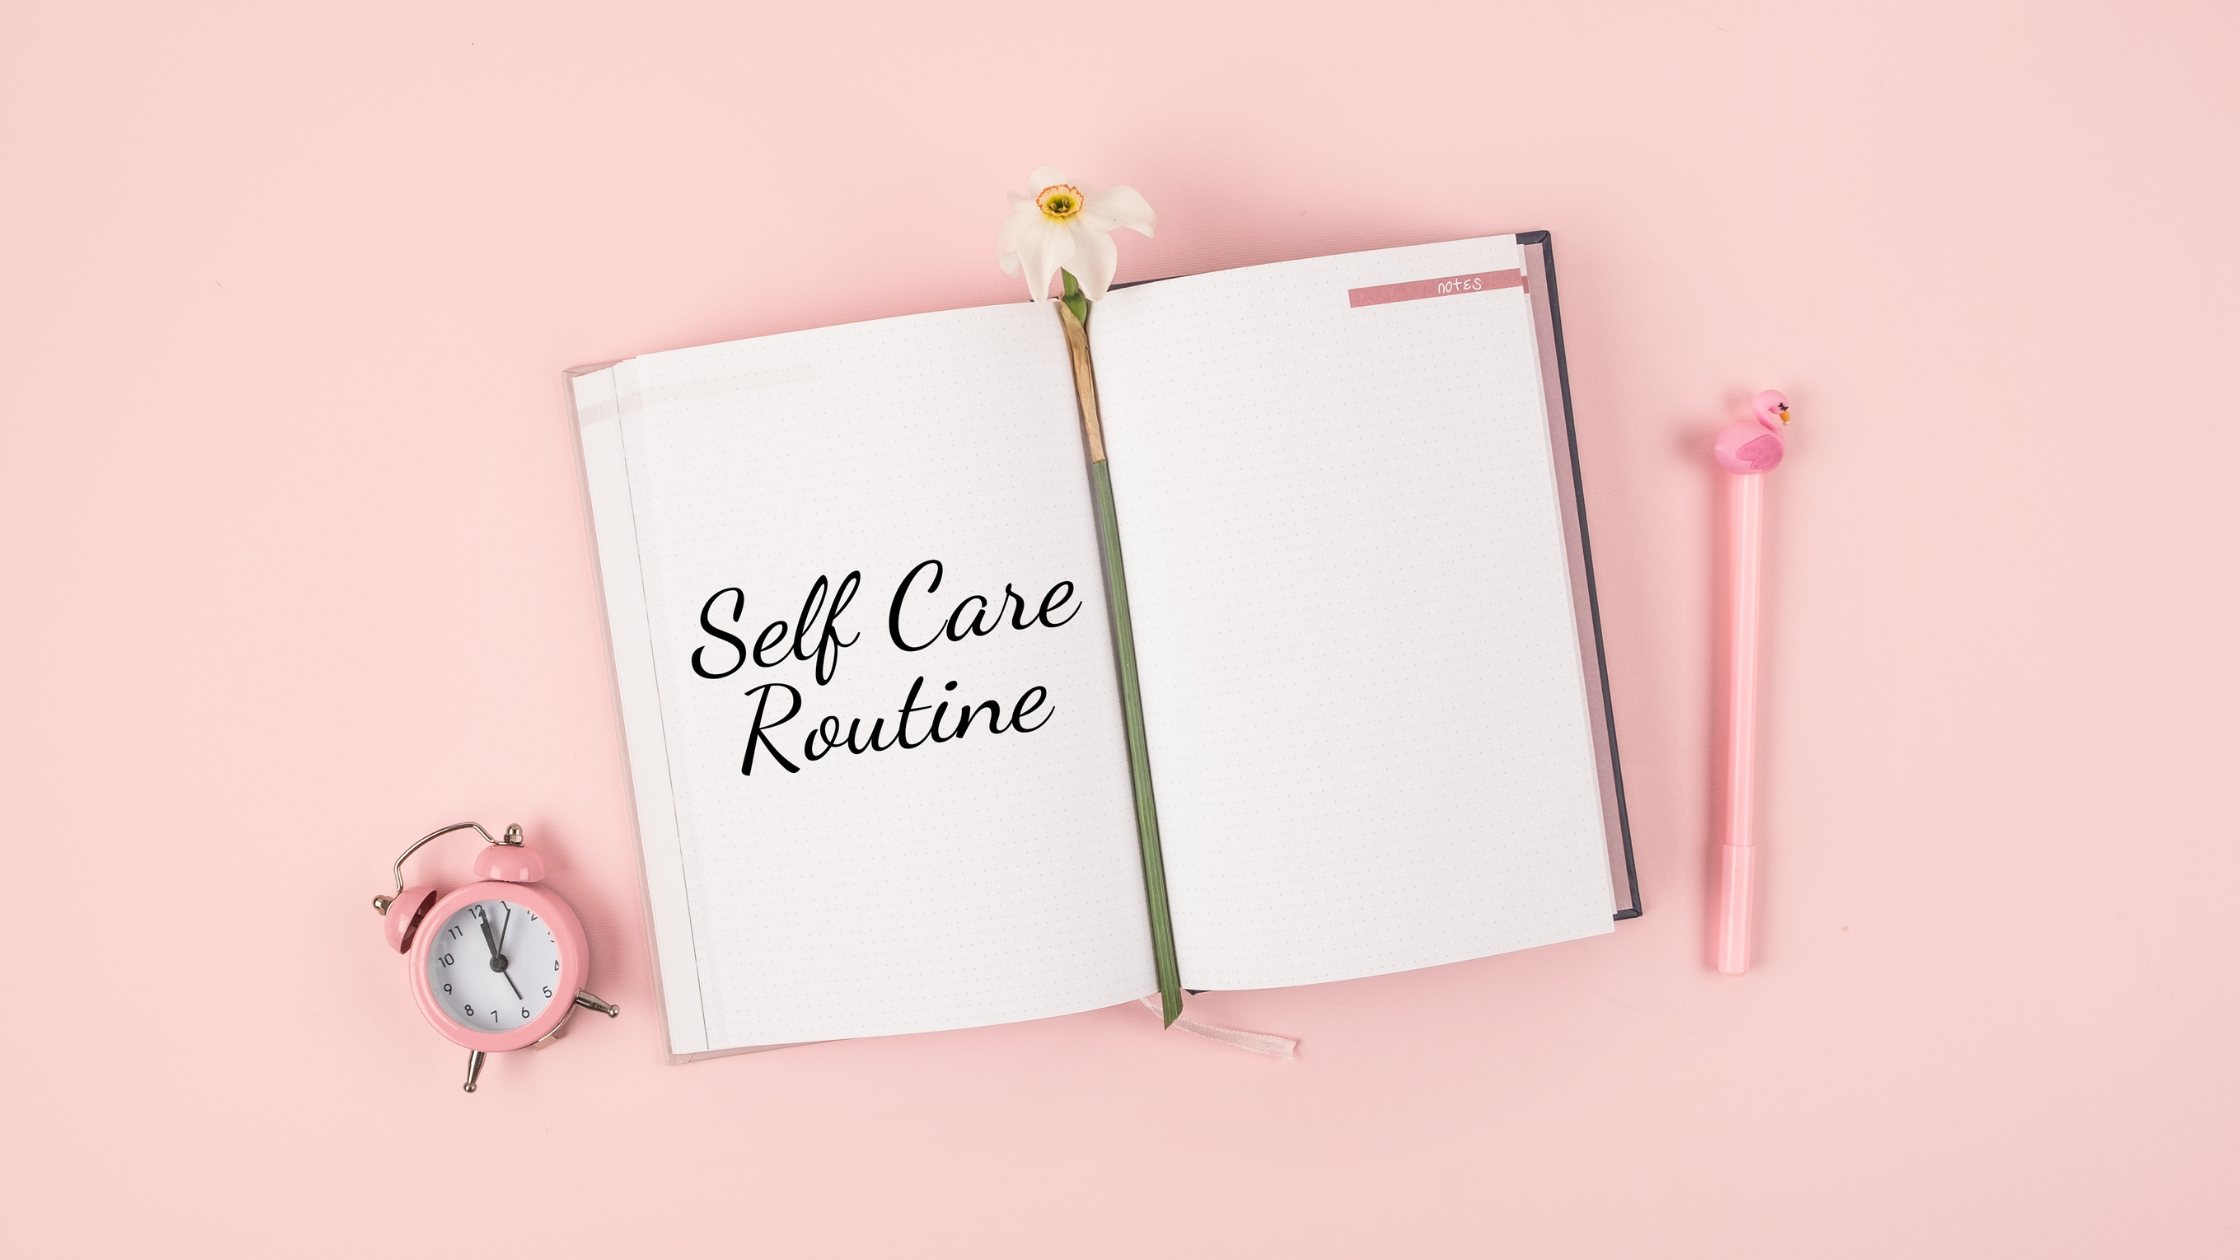 self-care tips from ignite for post-finals